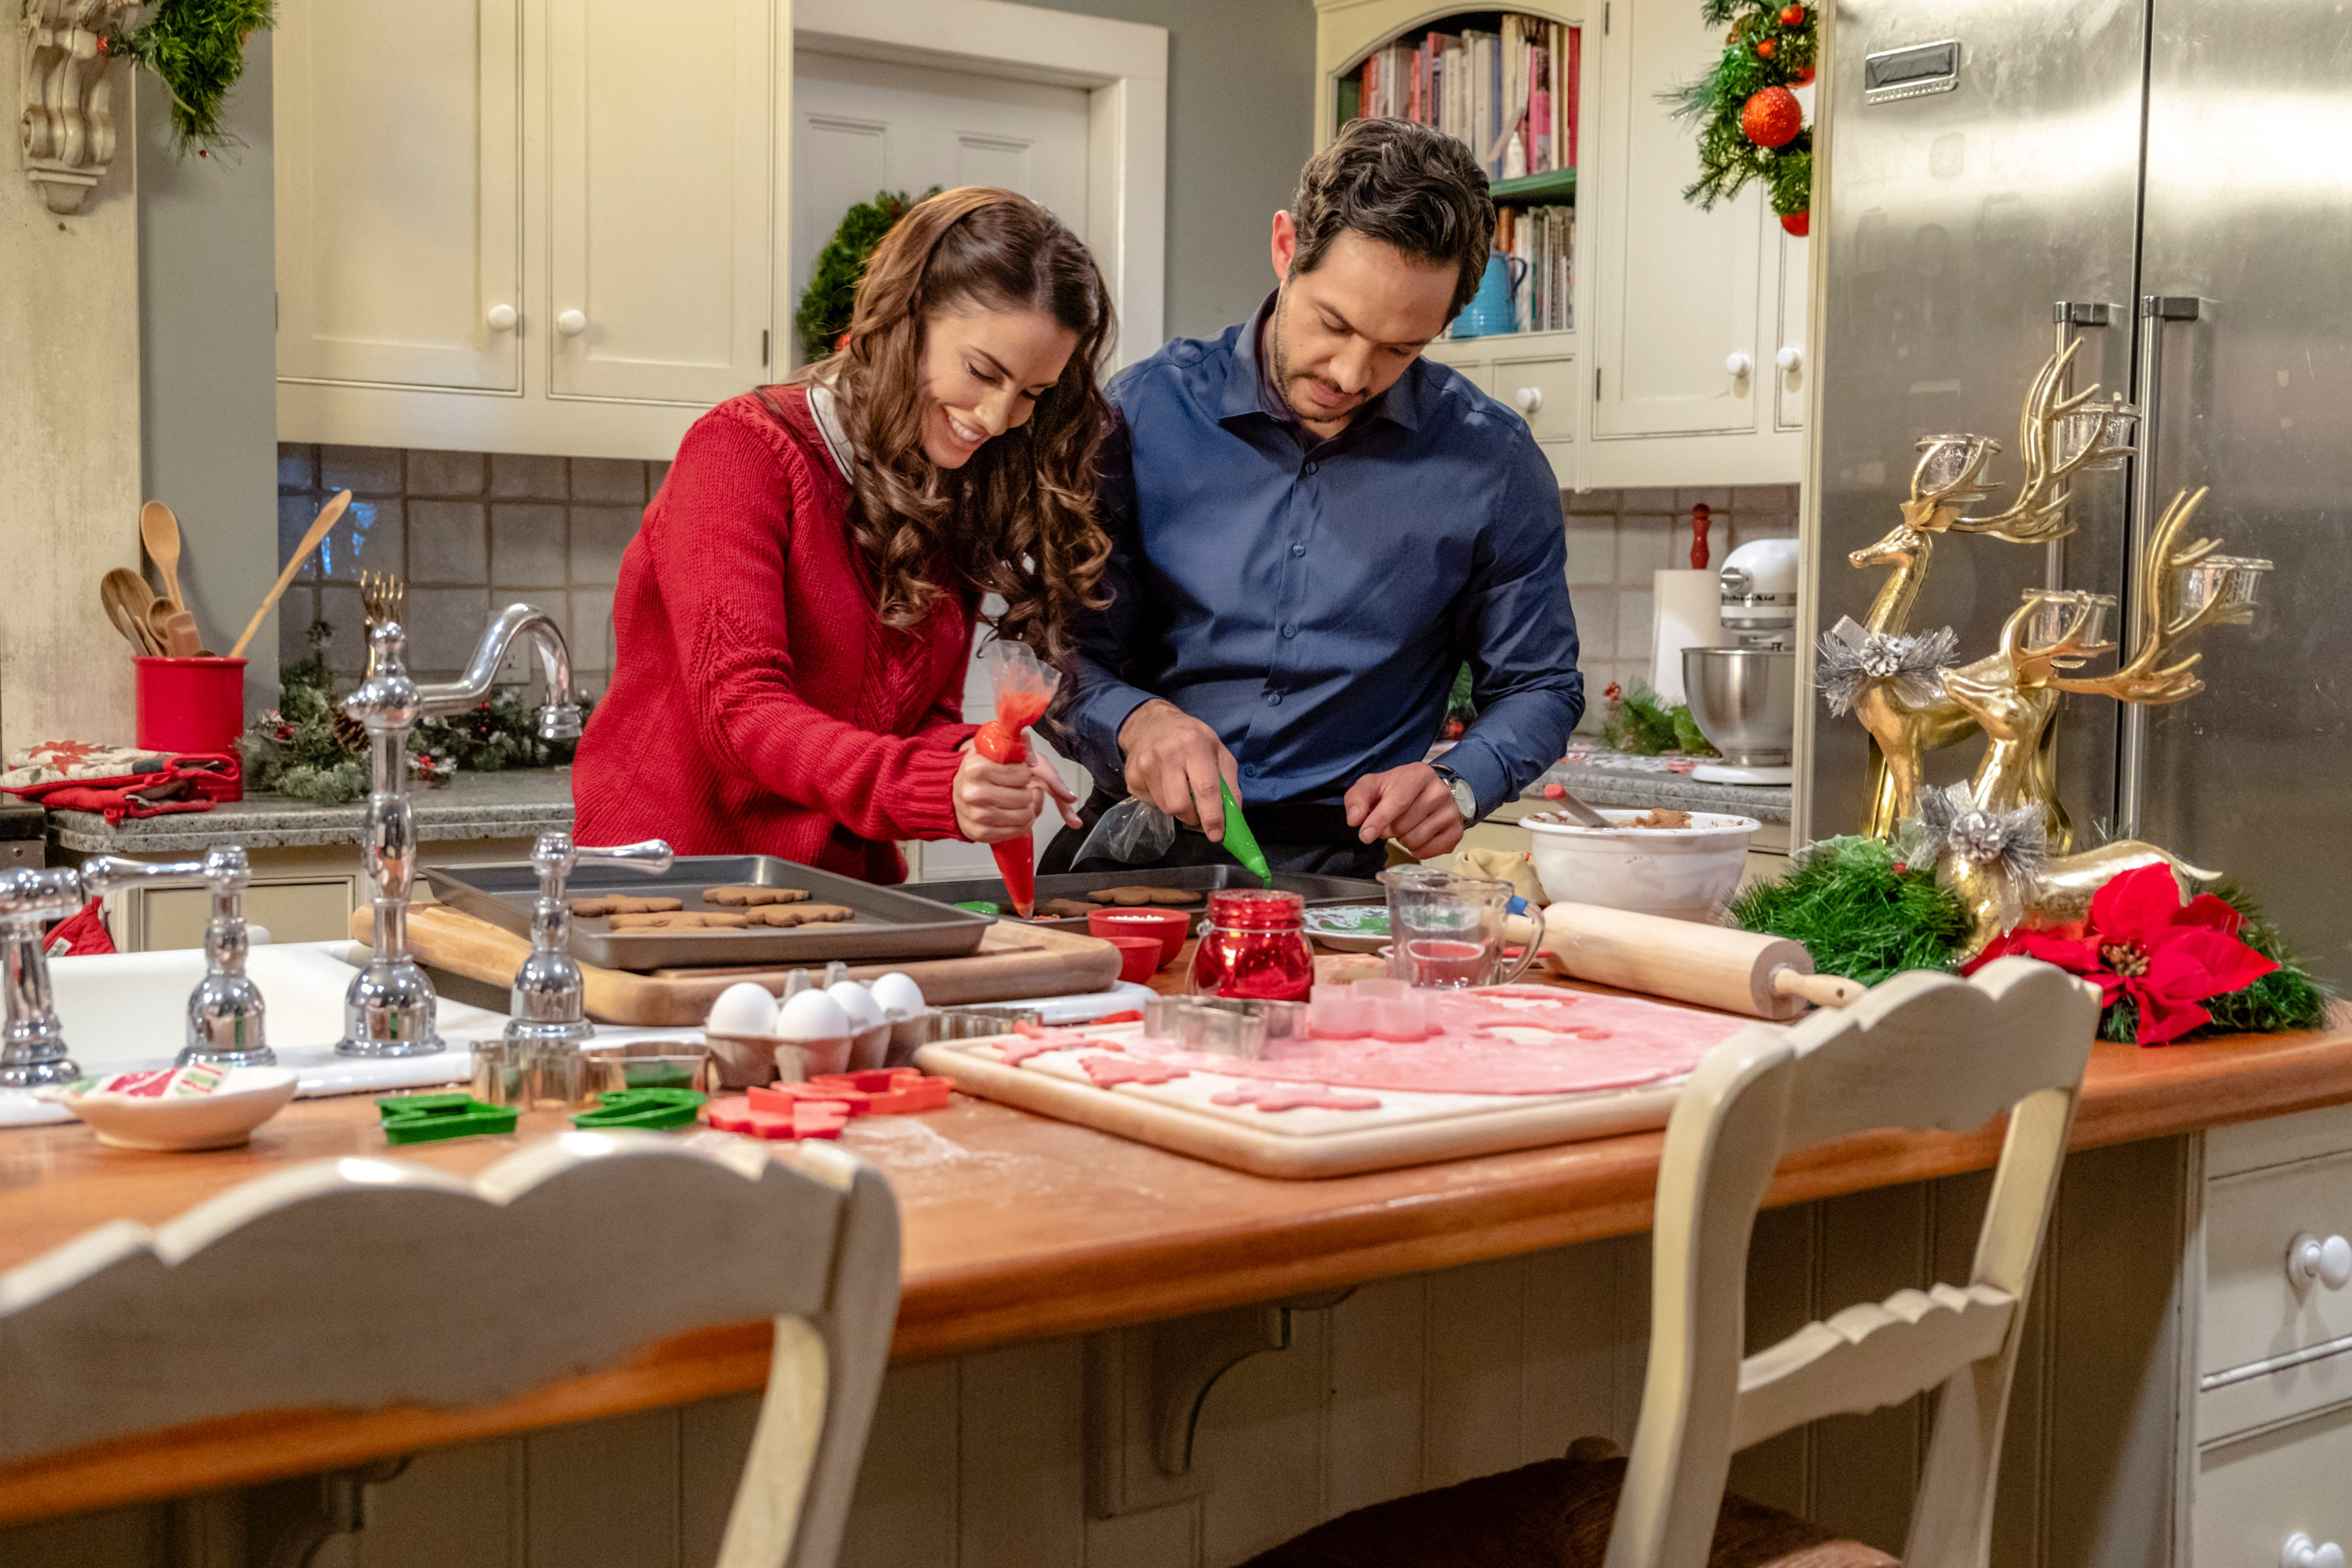 8 Hallmark Holiday Movies You Have To See This Year From Gingerbread Competitions To Royal Romances